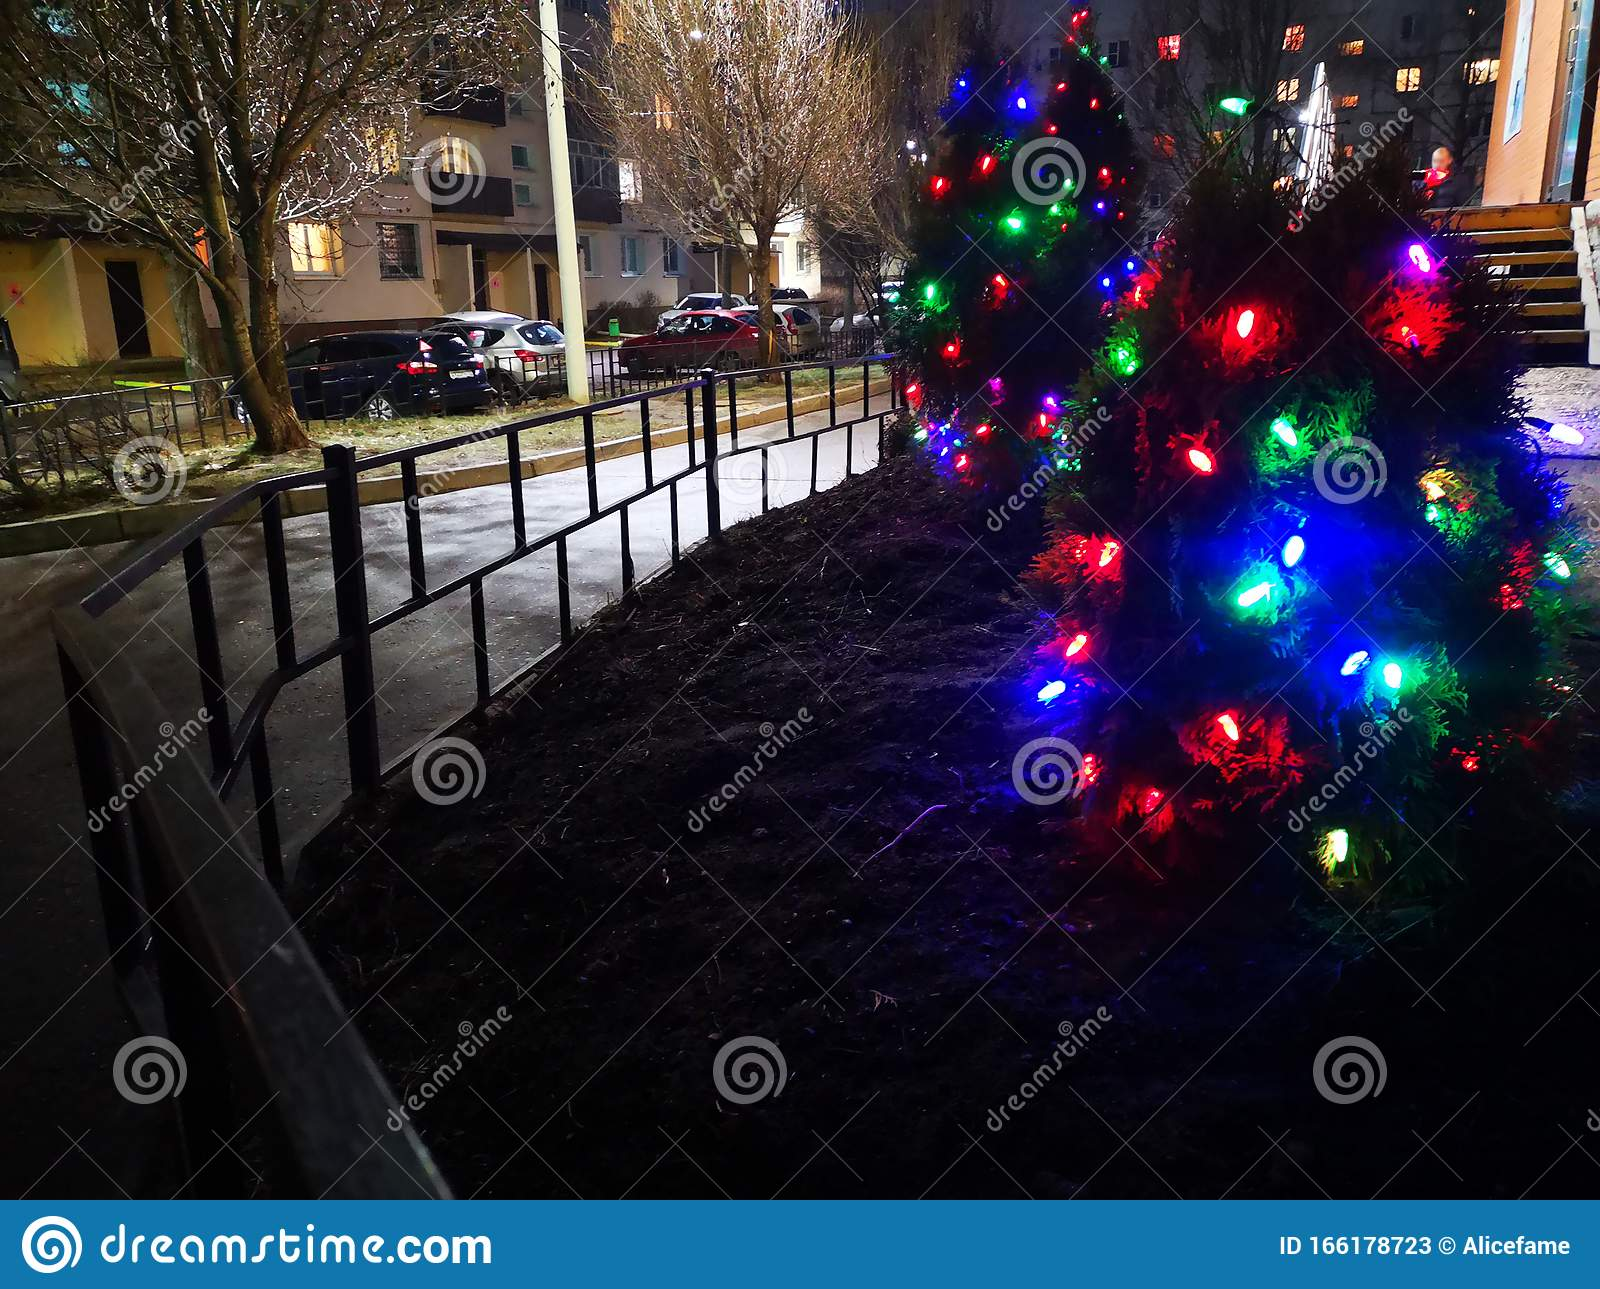 Christmas Tree Shines Beautifully With Multi Colored Lights In The Dark Stock Image Image Of Jolly Ornament 166178723